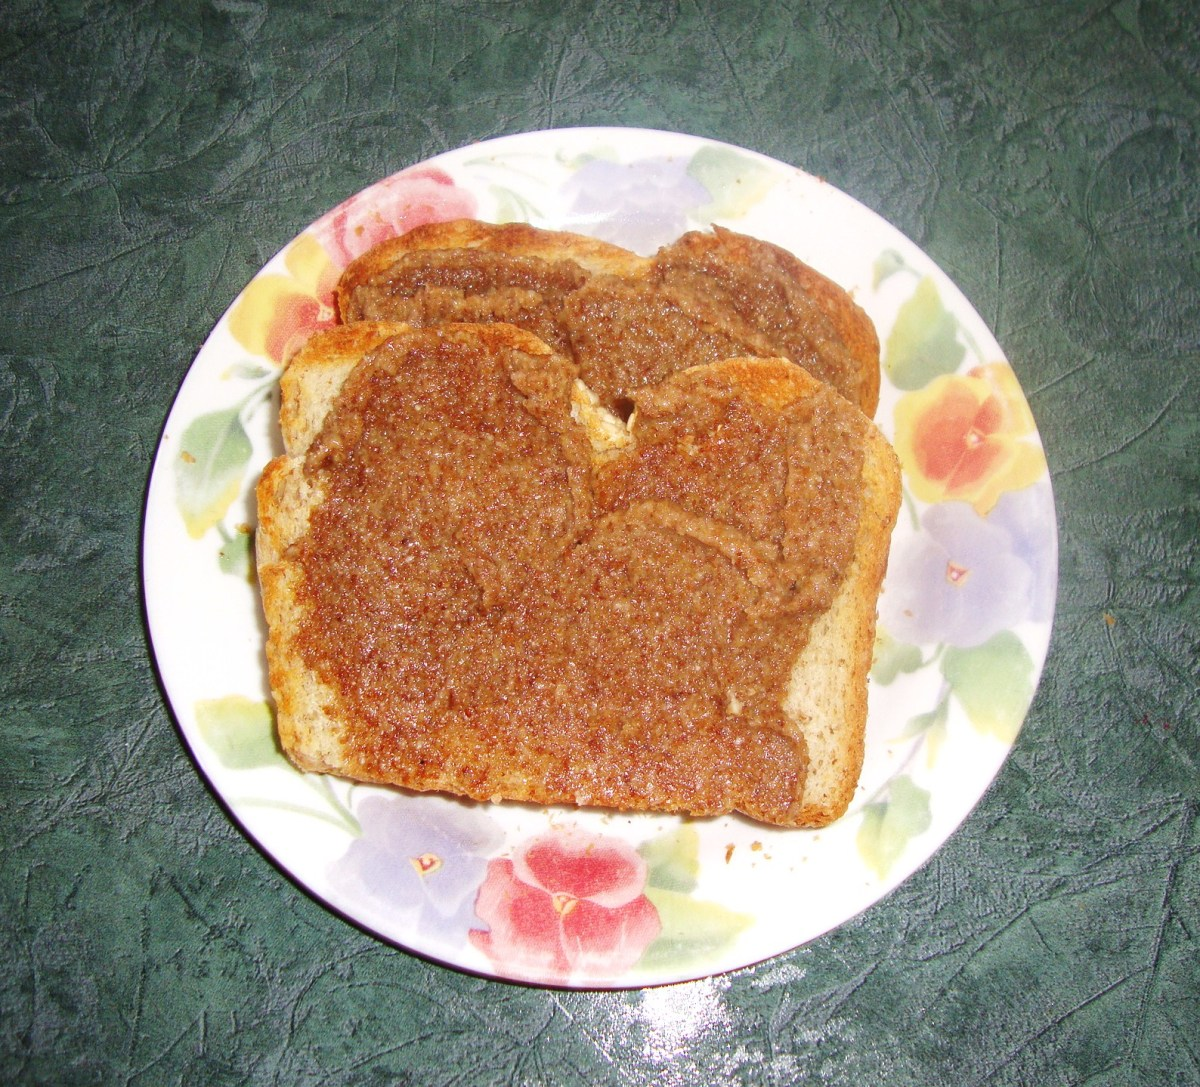 Starting the day off right with sesame-flax butter on toast.